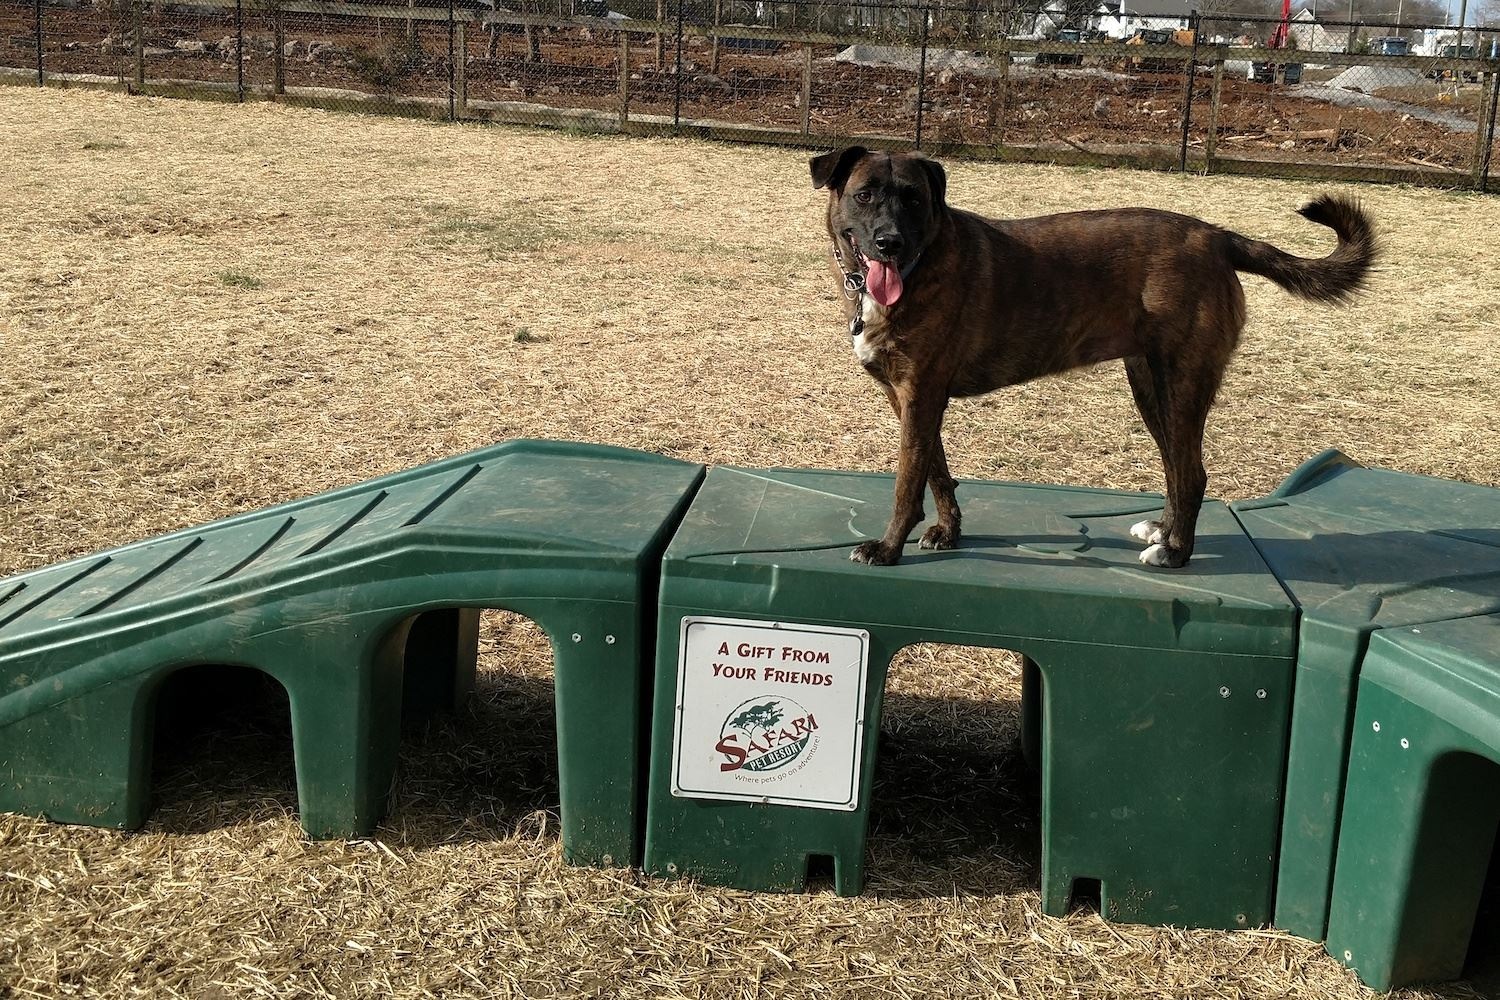 Brown dog standing on green agility platform in fenced area